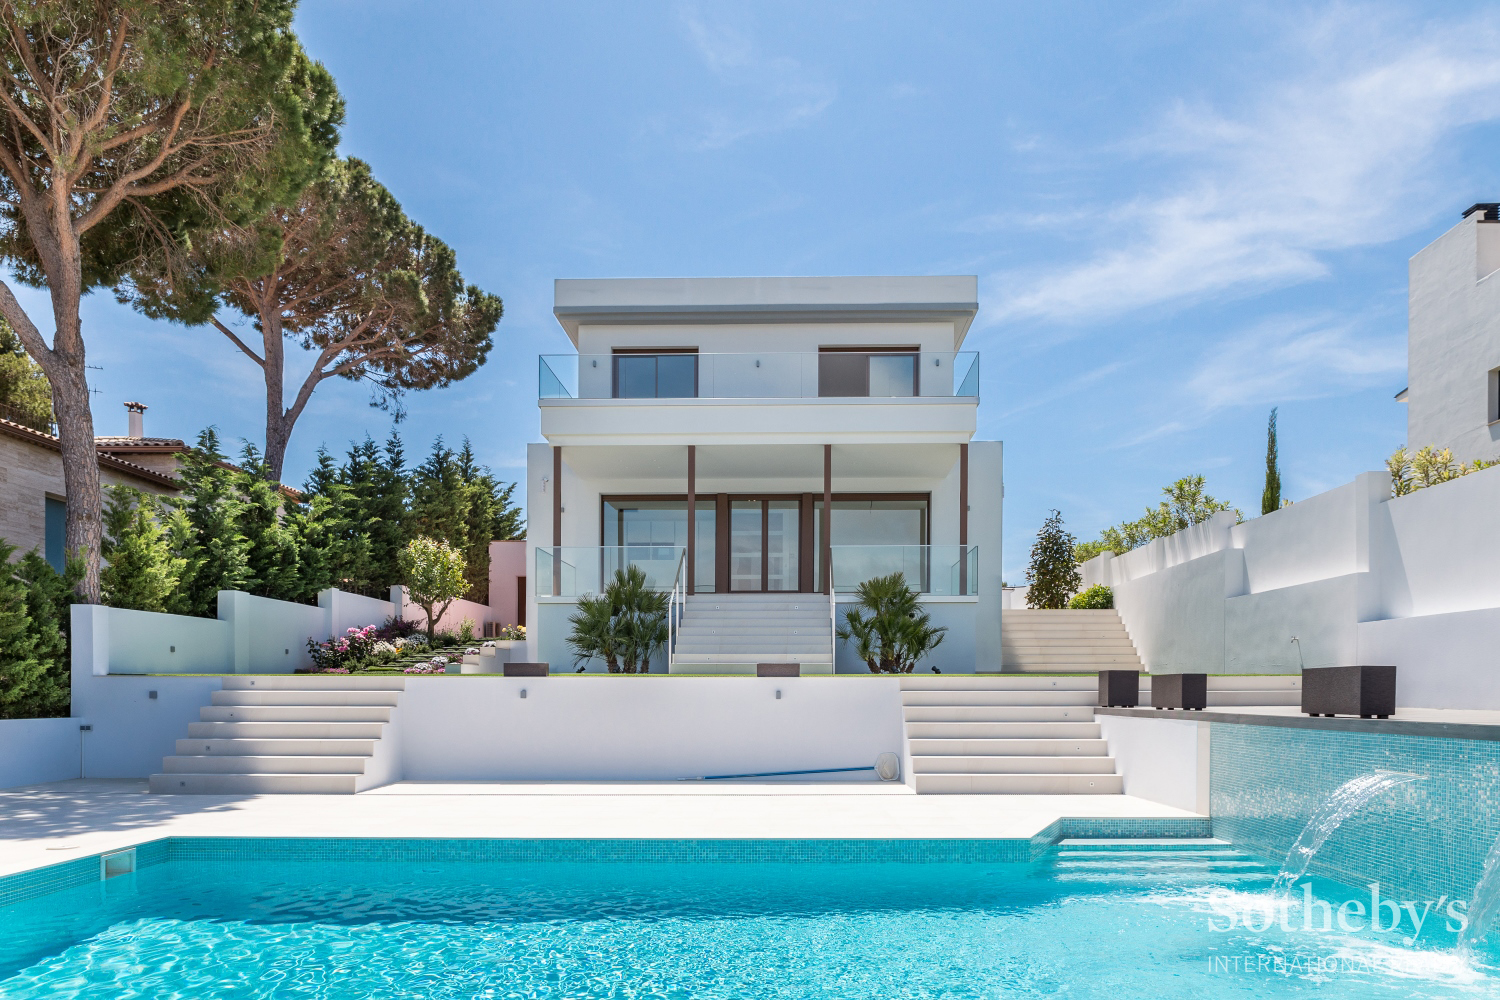 Single Family Home for Sale at Excellent newly built villa with sea views Torrevalentina, Barcelona 17252 Spain